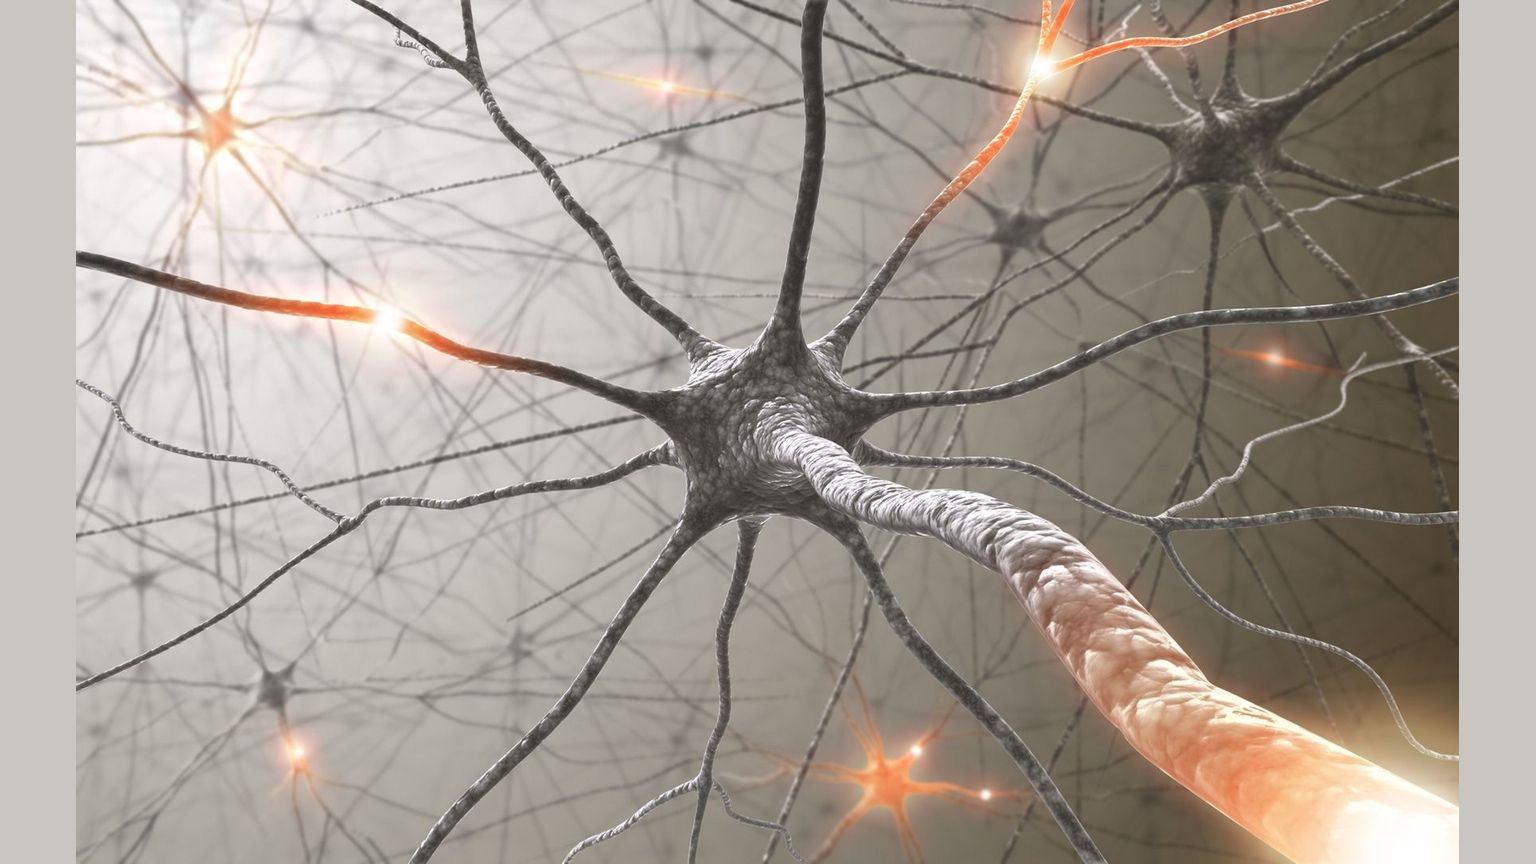 Neuroplasticity and our ability to mentally adapt